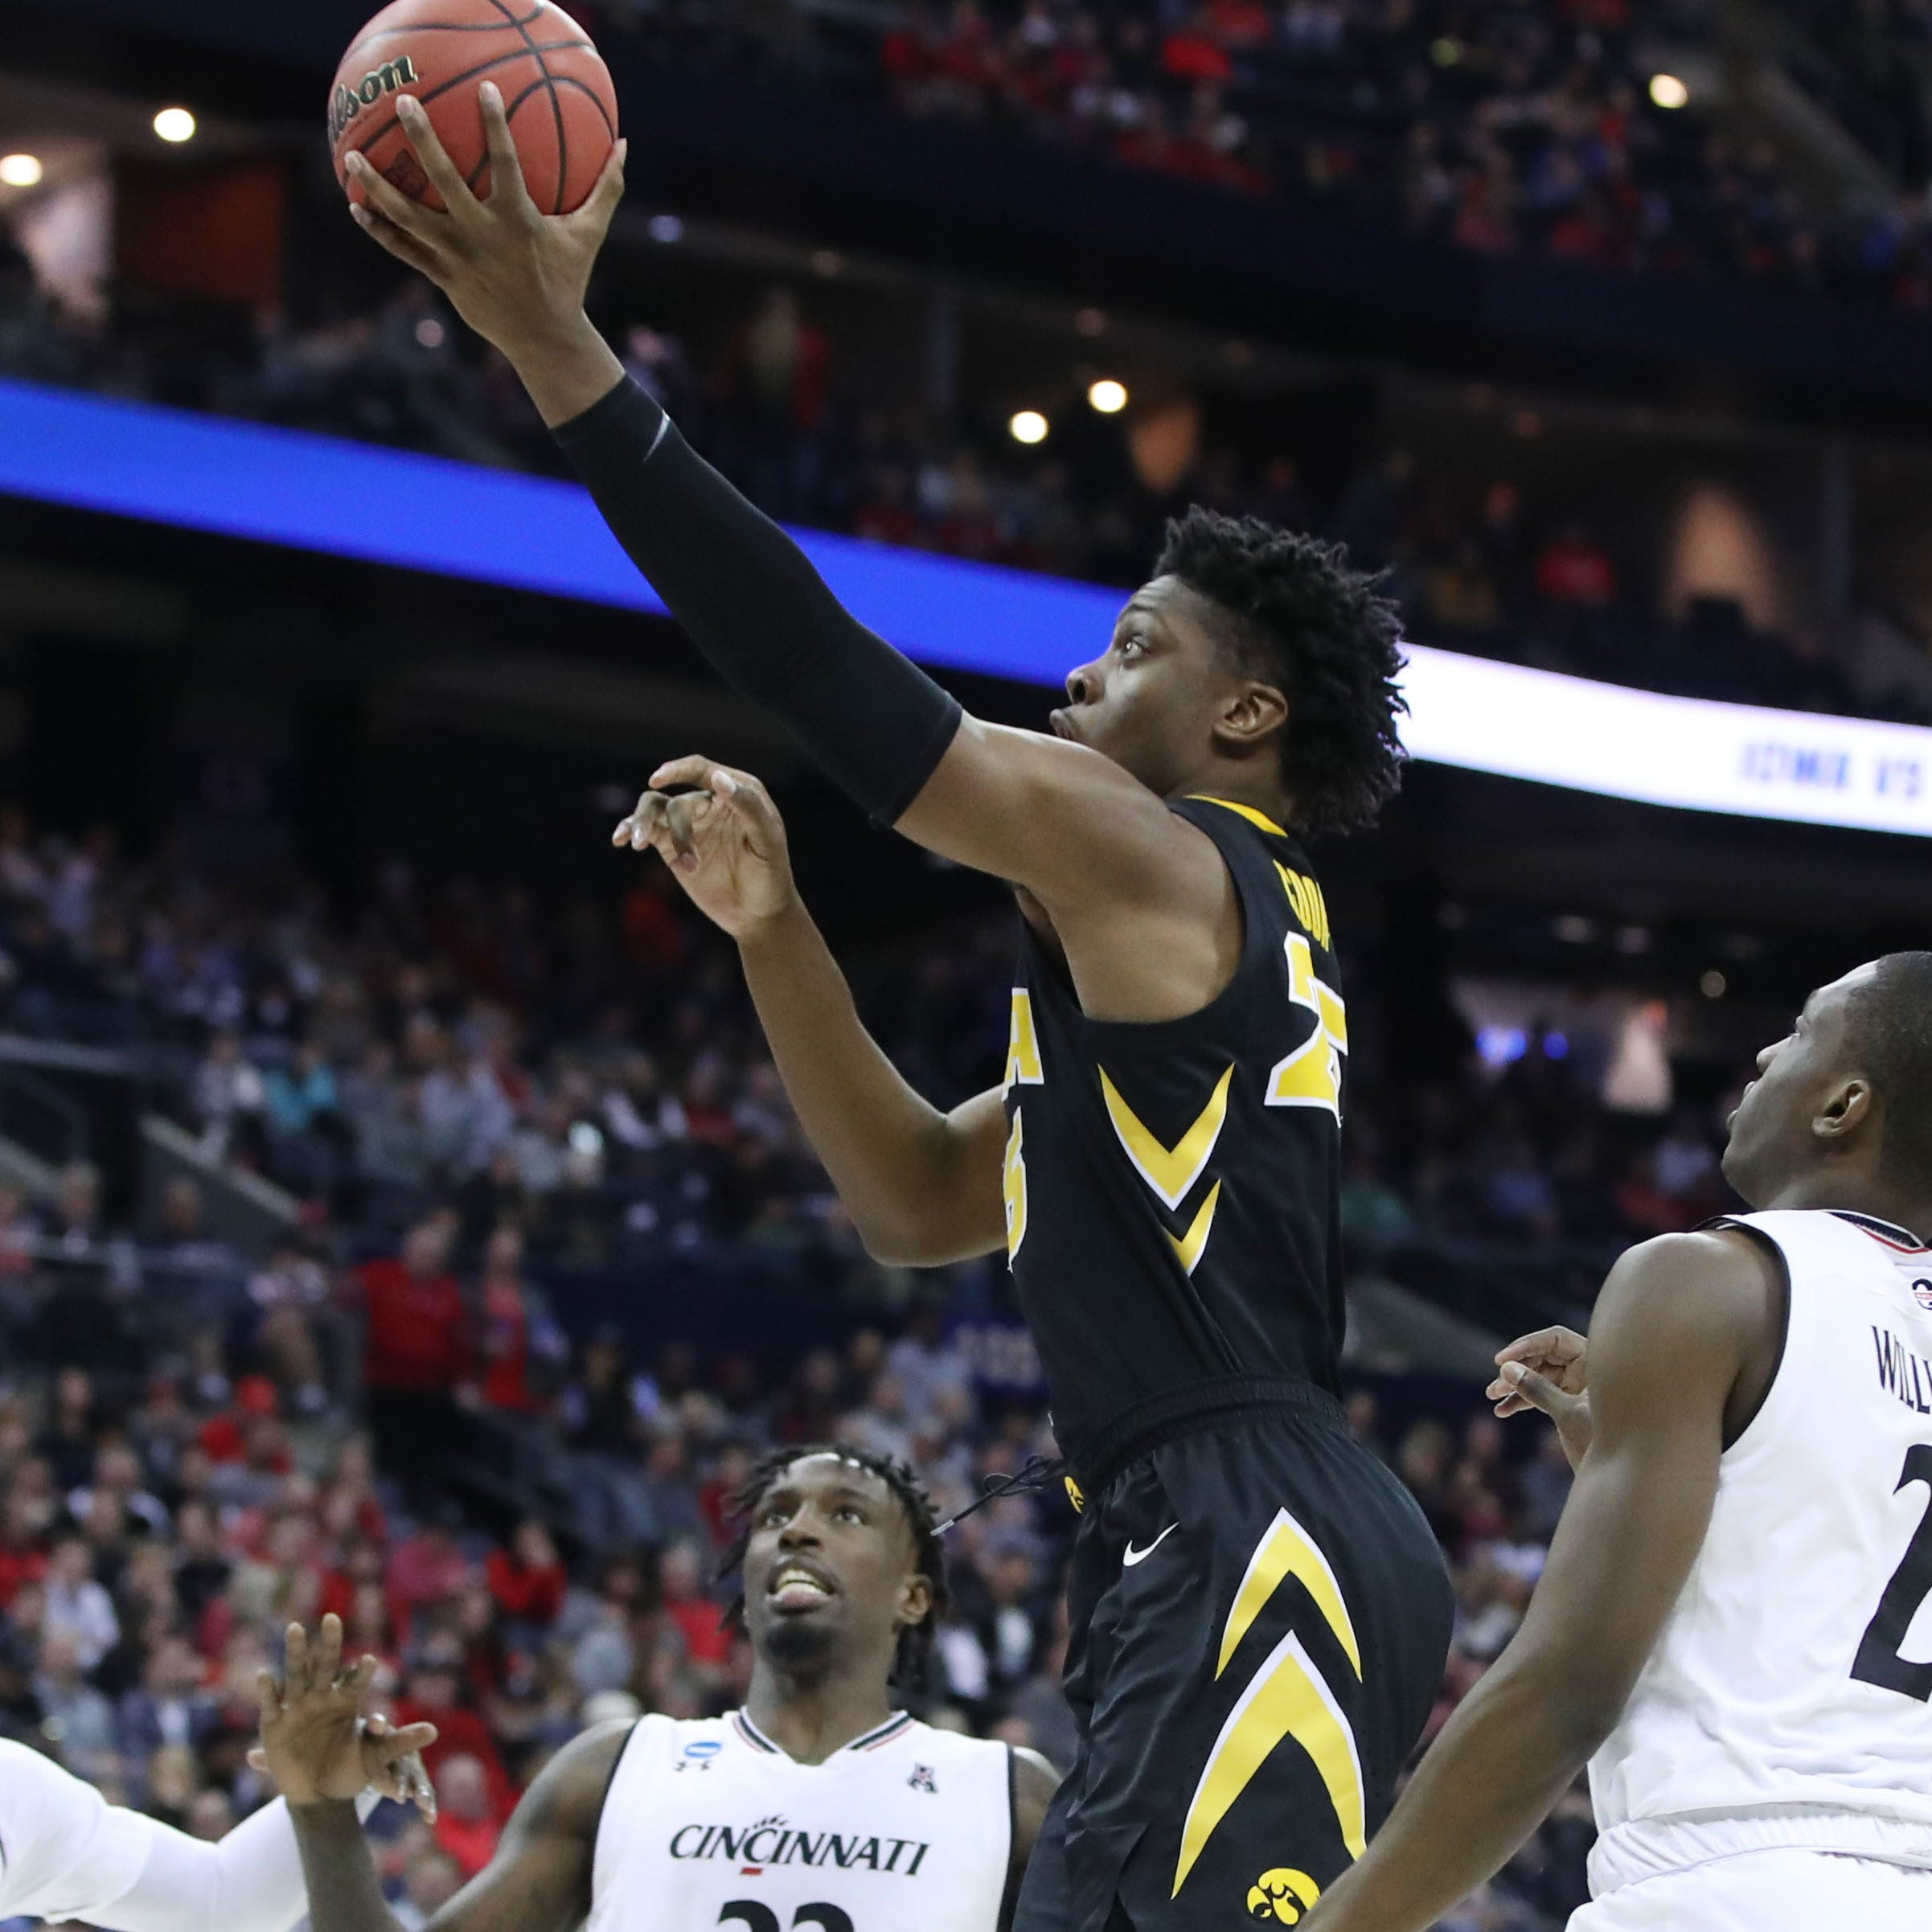 Iowa's Tyler Cook looks to shake off missed layups; Connor McCaffery feeling better